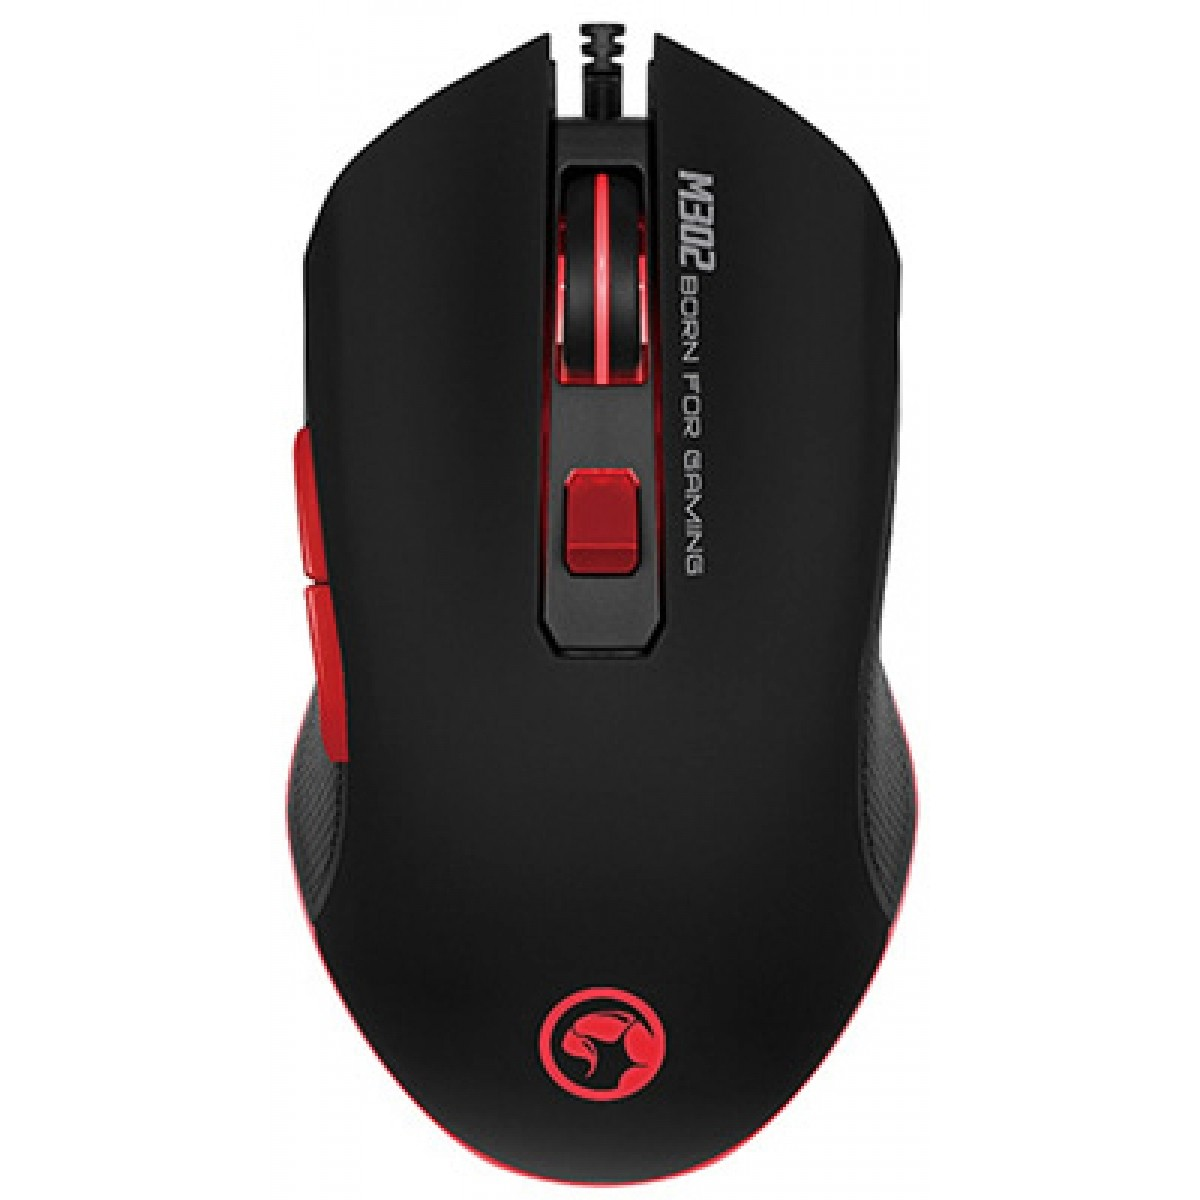 Mouse Marvo Gamer M302 Wired 6 Botões 3200 DPI LED Rainbow